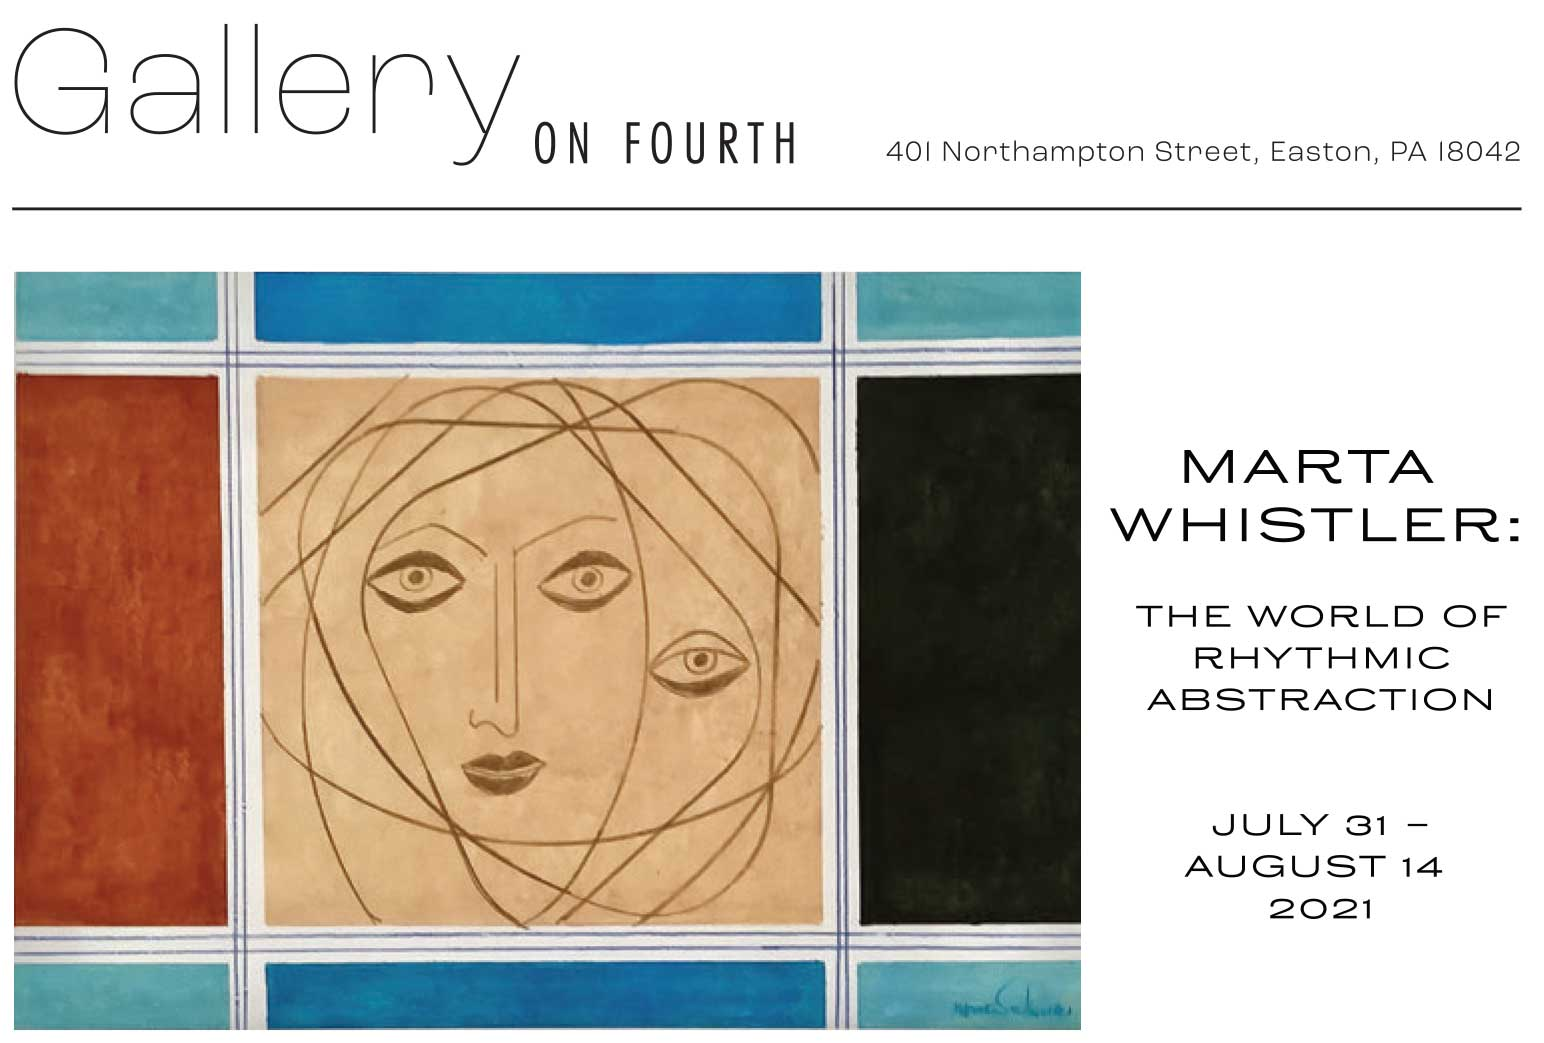 Marta Whistler - Gallery On Fourth - The World of Rhythmic Abstraction